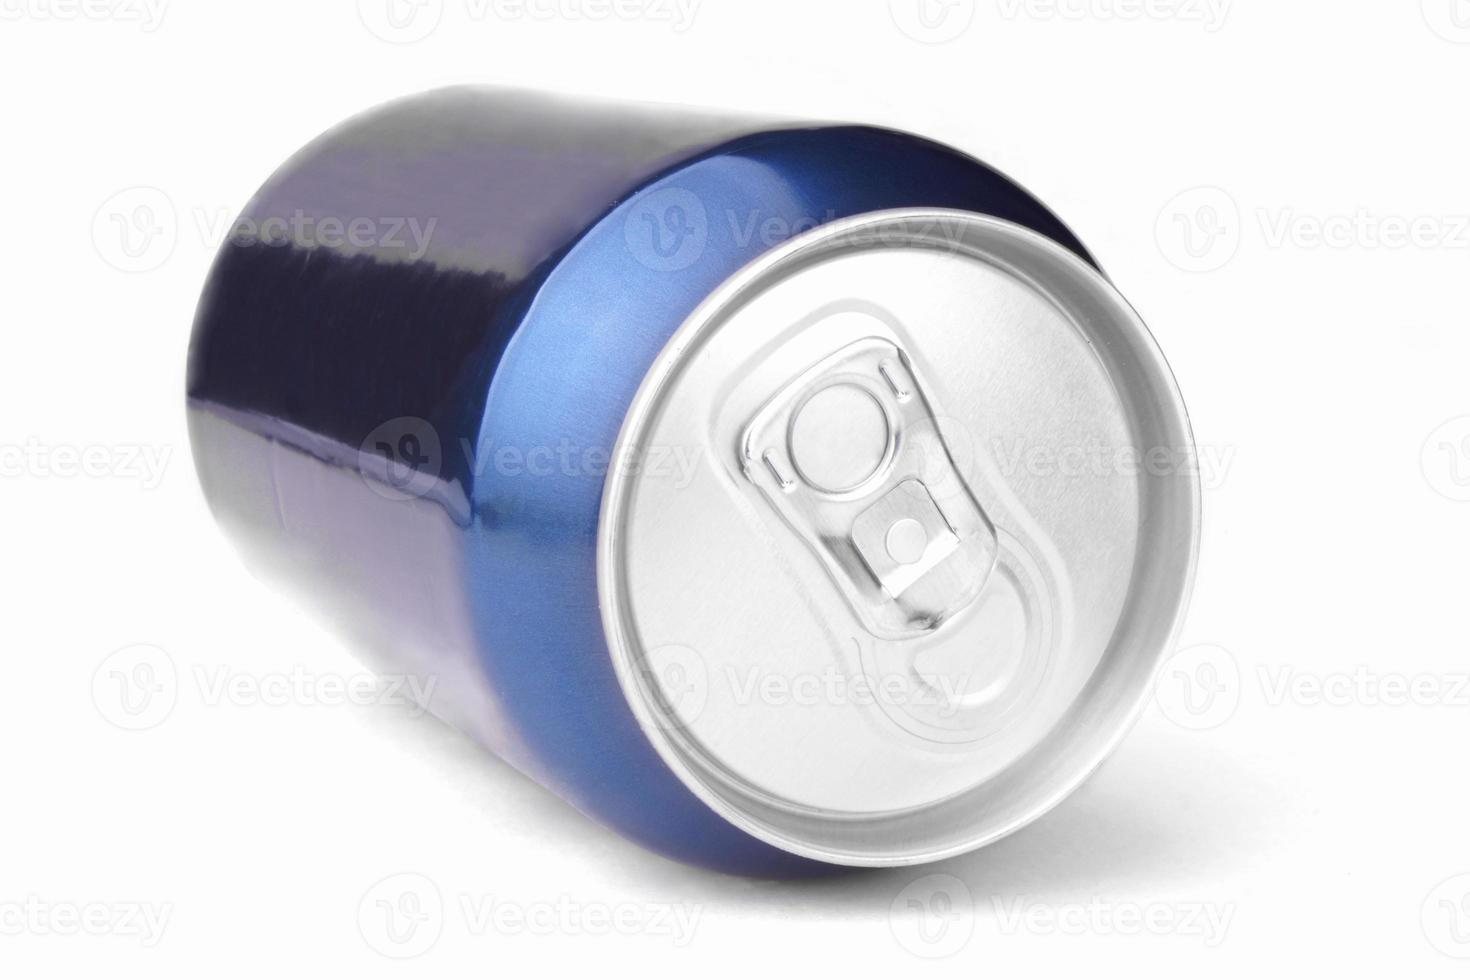 Canned Drink photo